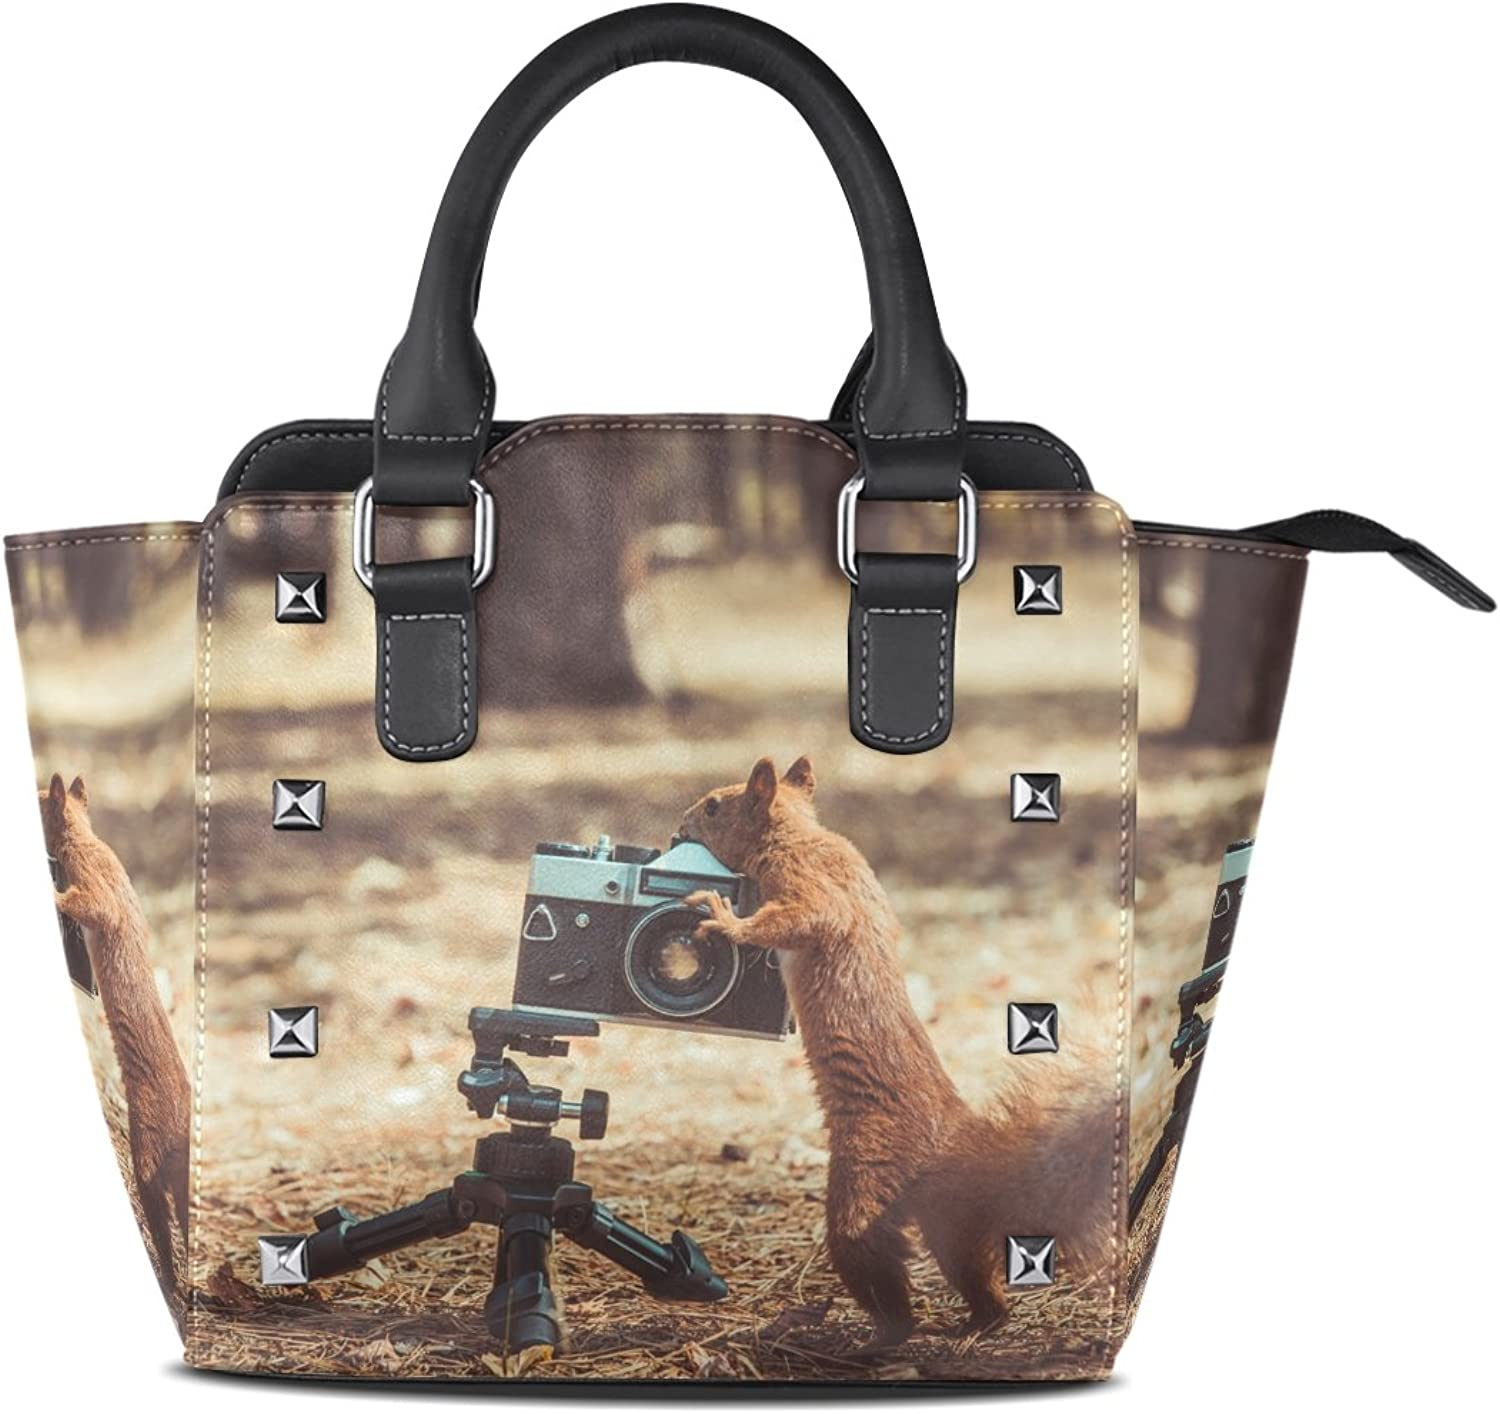 Sunlome Red Squirrel with Film Camera Print Handbags Women's PU Leather Top-Handle Shoulder Bags